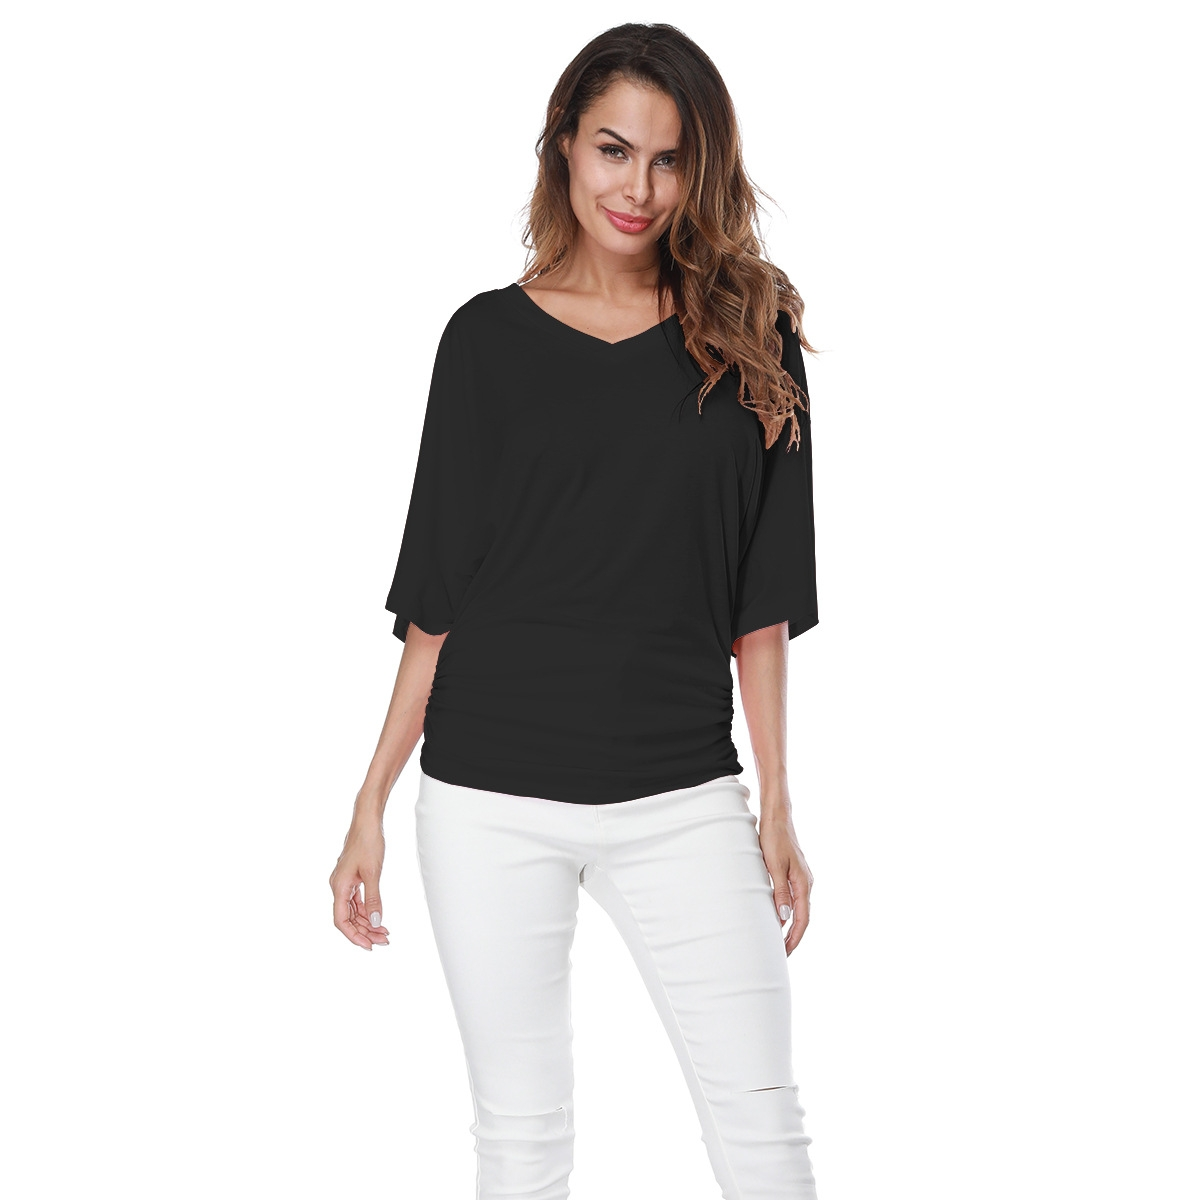 07356e0c2a8 Large Size Women Fashion Loose Bat Sleeve V-neck Short Sleeved T-shirt Top  black s  Product No  1857504. Item specifics  Brand